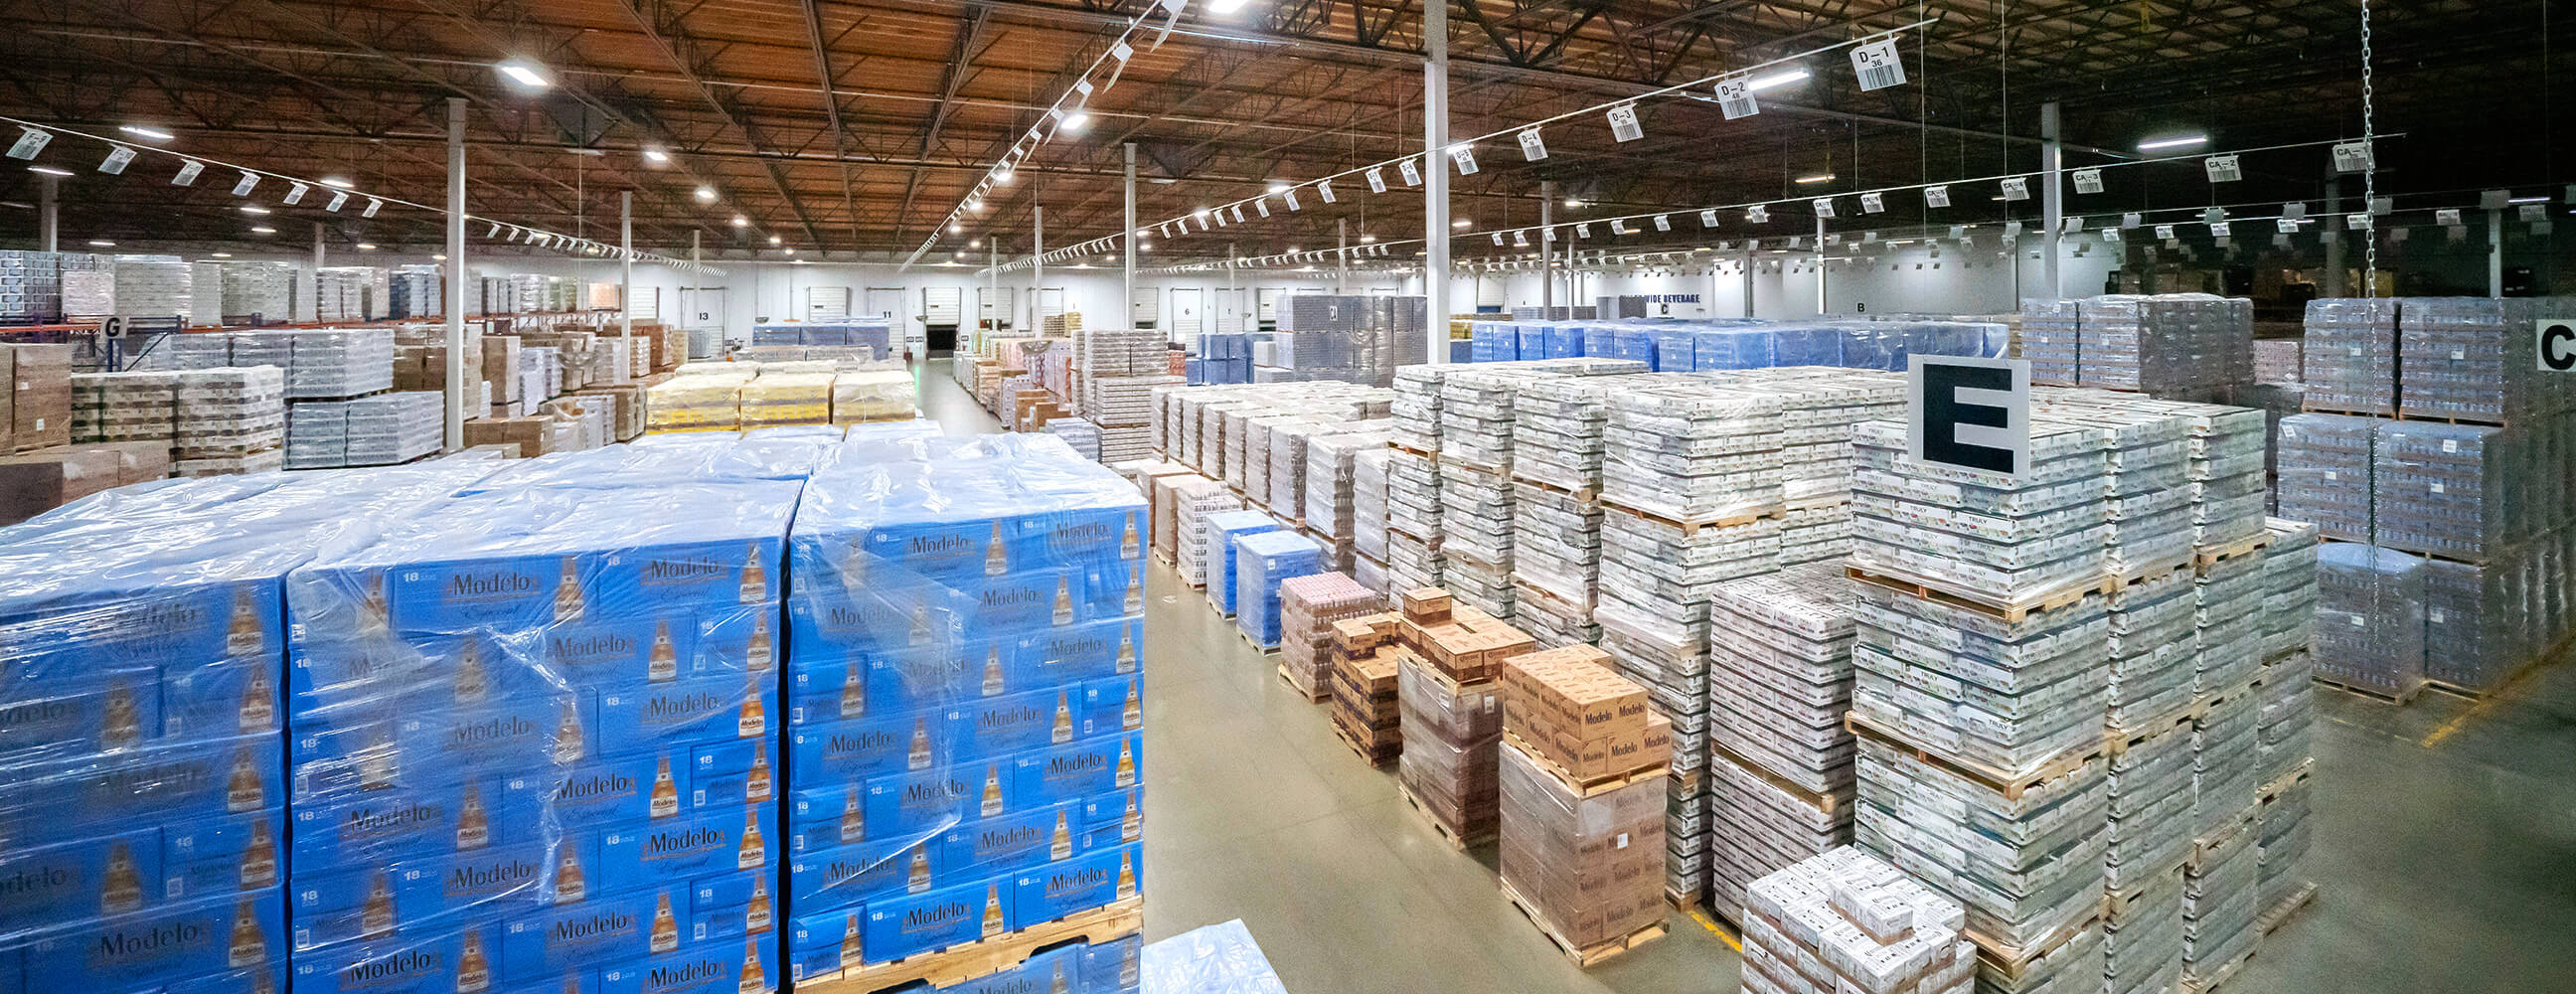 Warehouse storing alcohol beverages